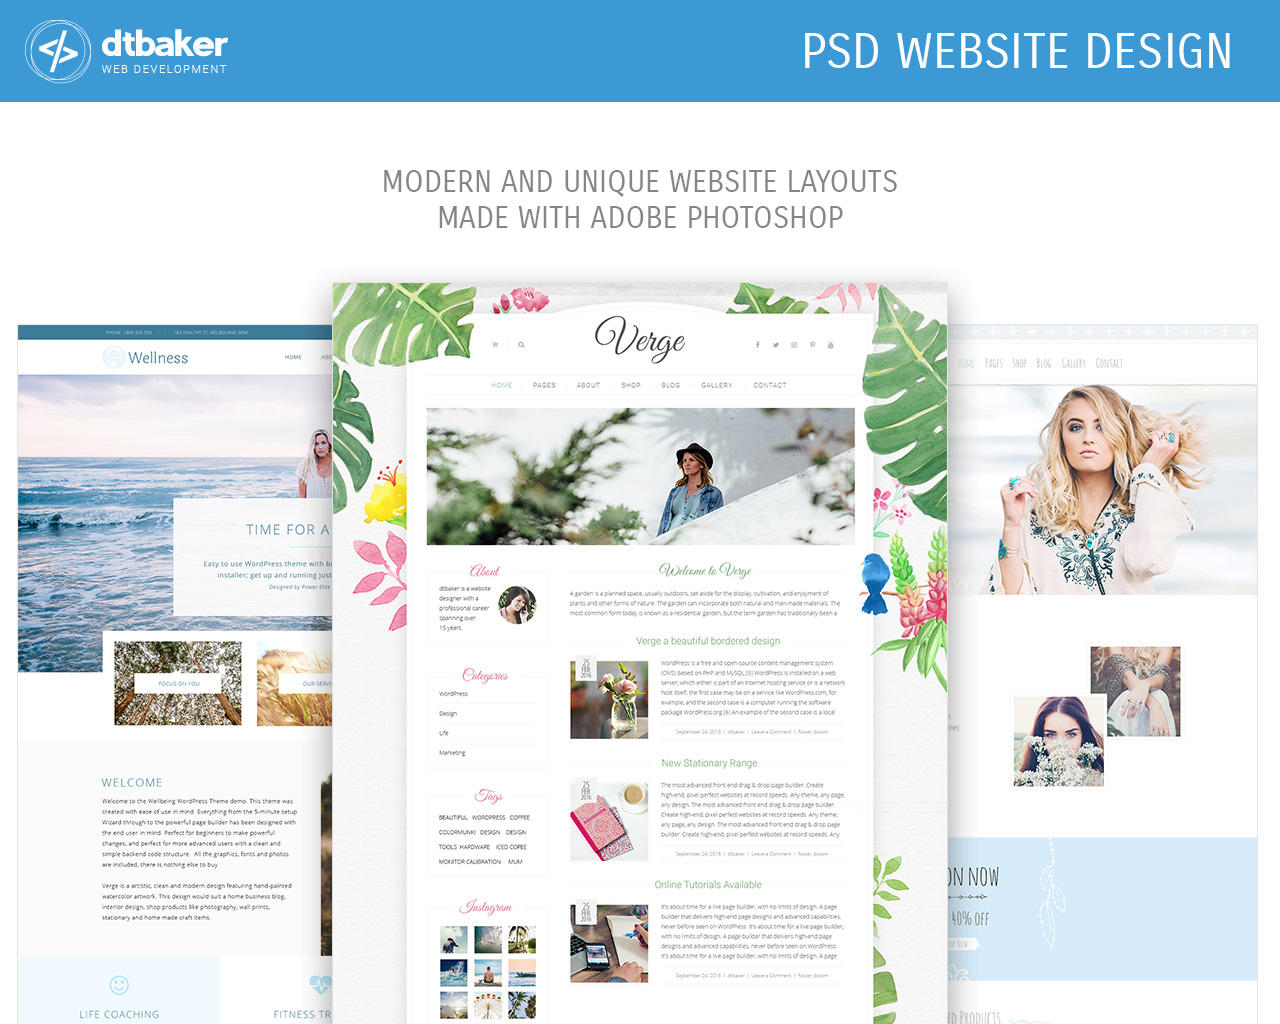 PSD Website Design by dtbaker - 106211